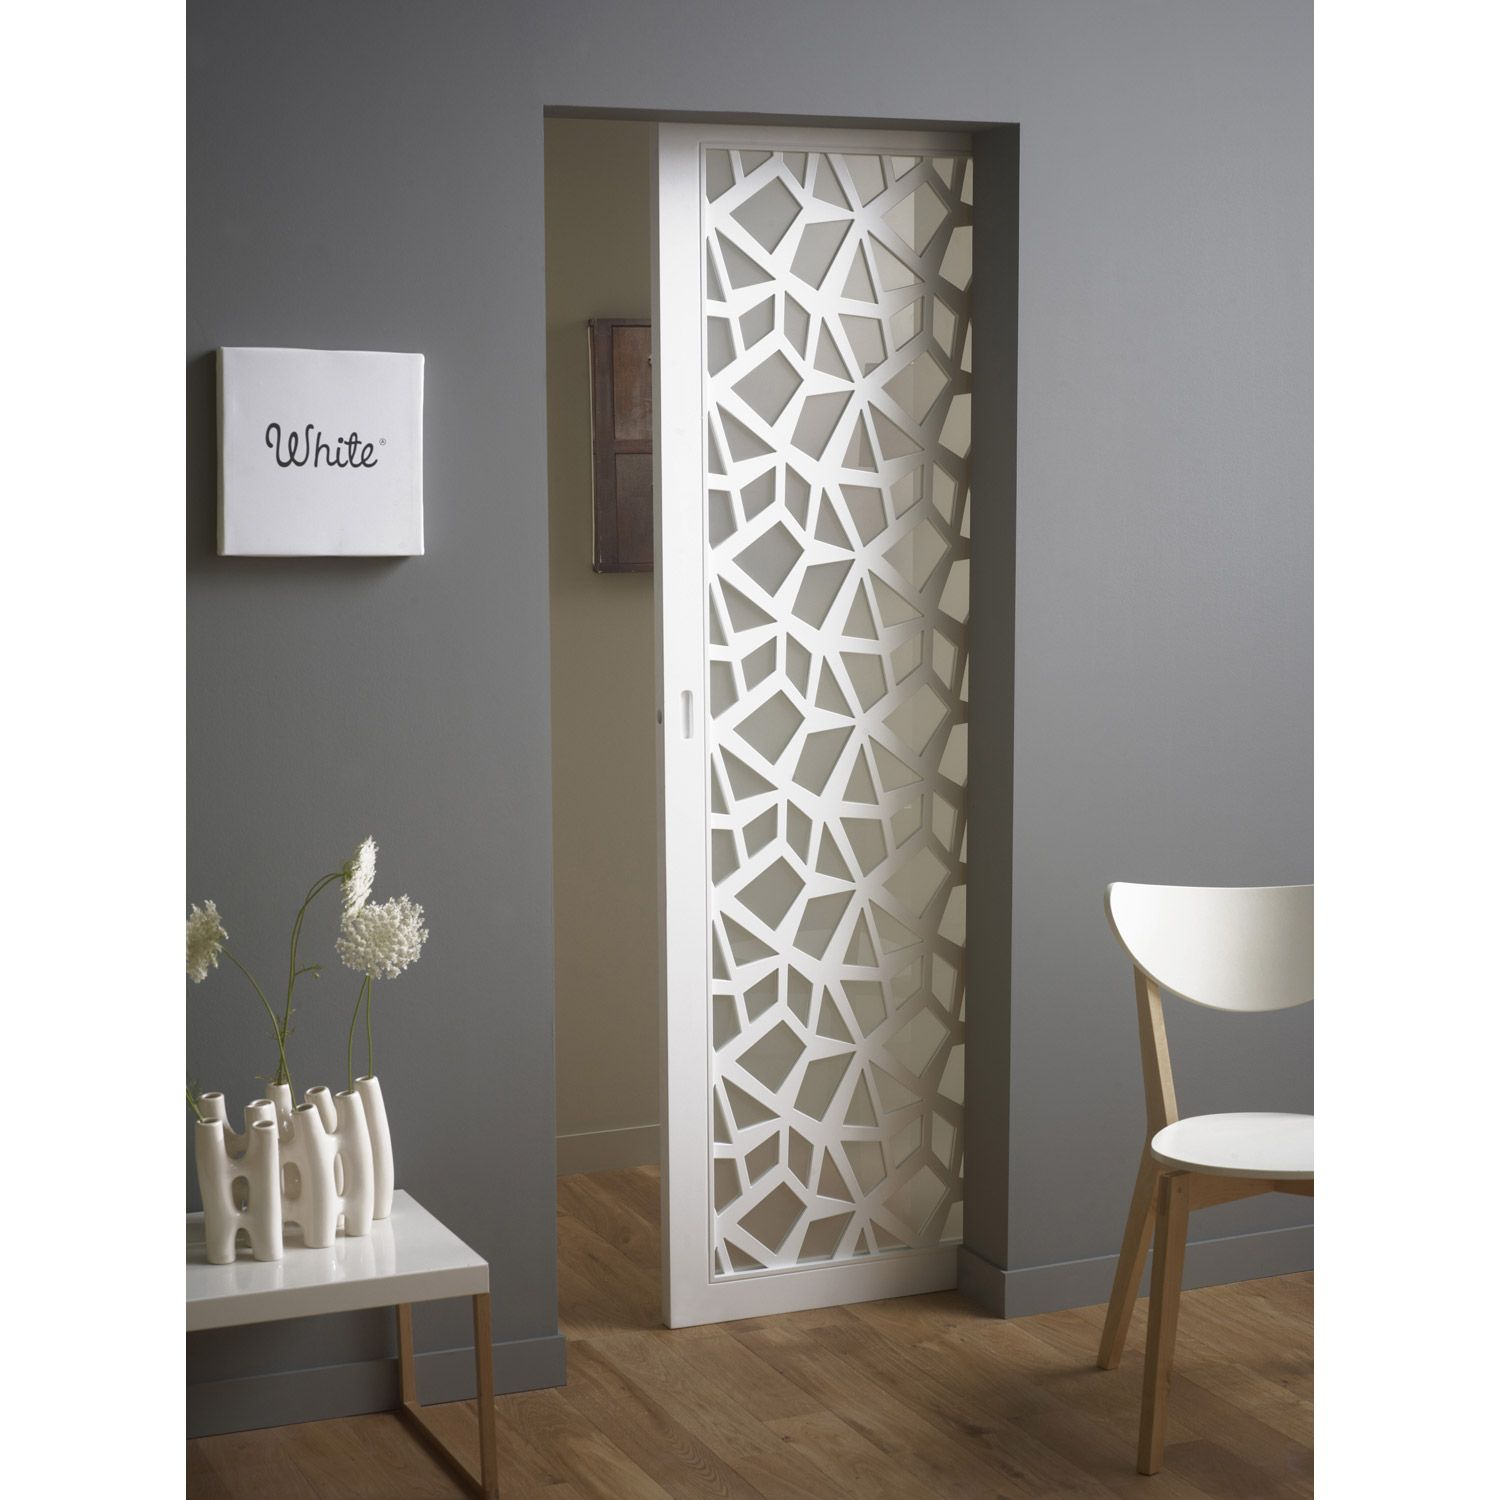 Ensemble porte coulissante crash verre mdf laqu for Decoration porte aluminium